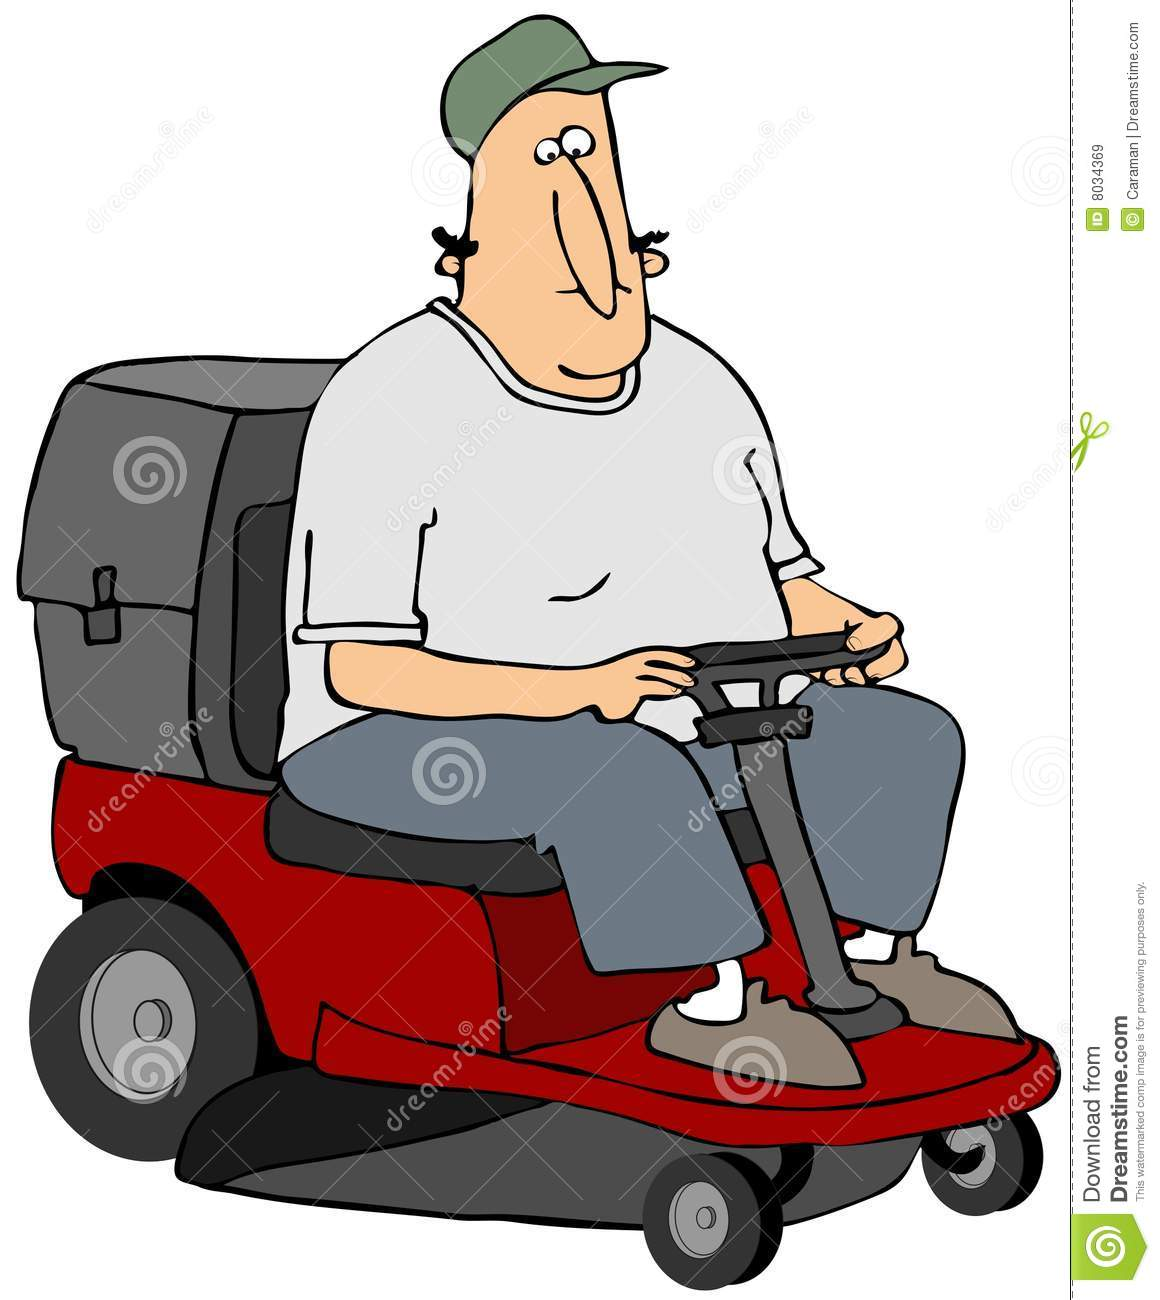 Riding mower stock illustration illustration of ride 8034369 riding mower publicscrutiny Image collections